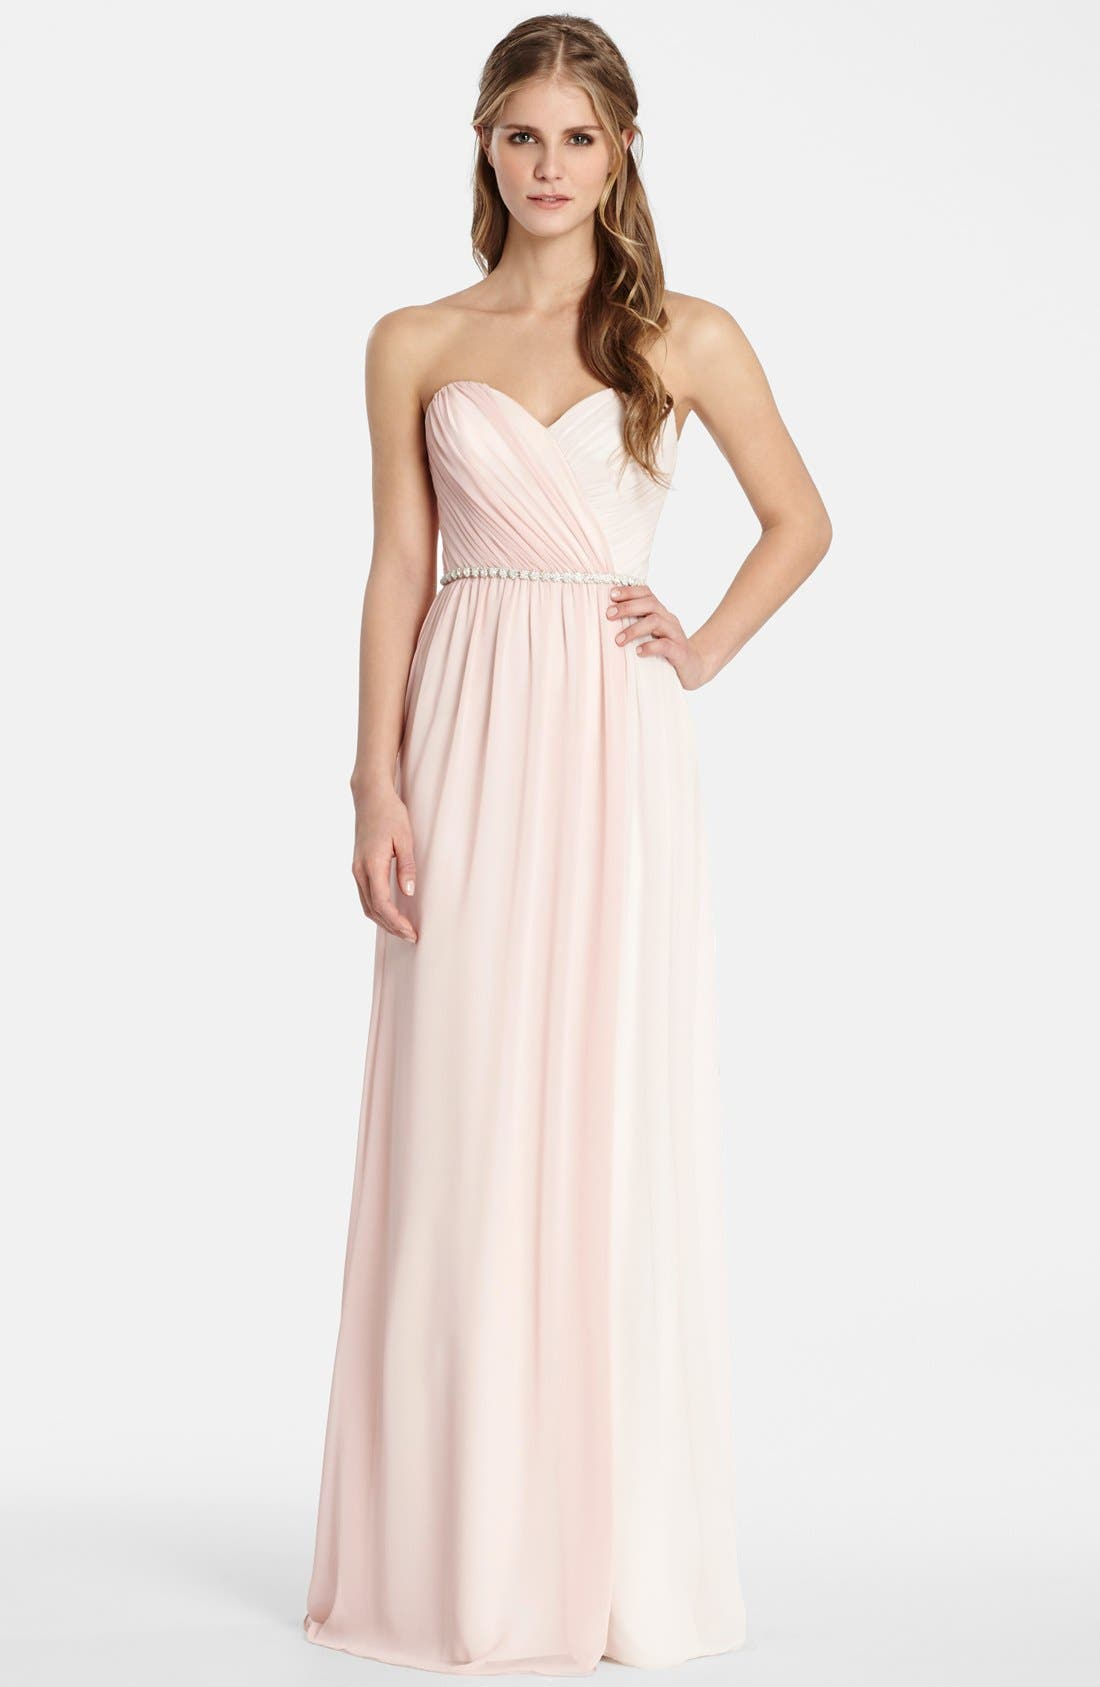 Alternate Image 1 Selected - Jim Hjelm Occasions Two Tone Strapless Chiffon Gown